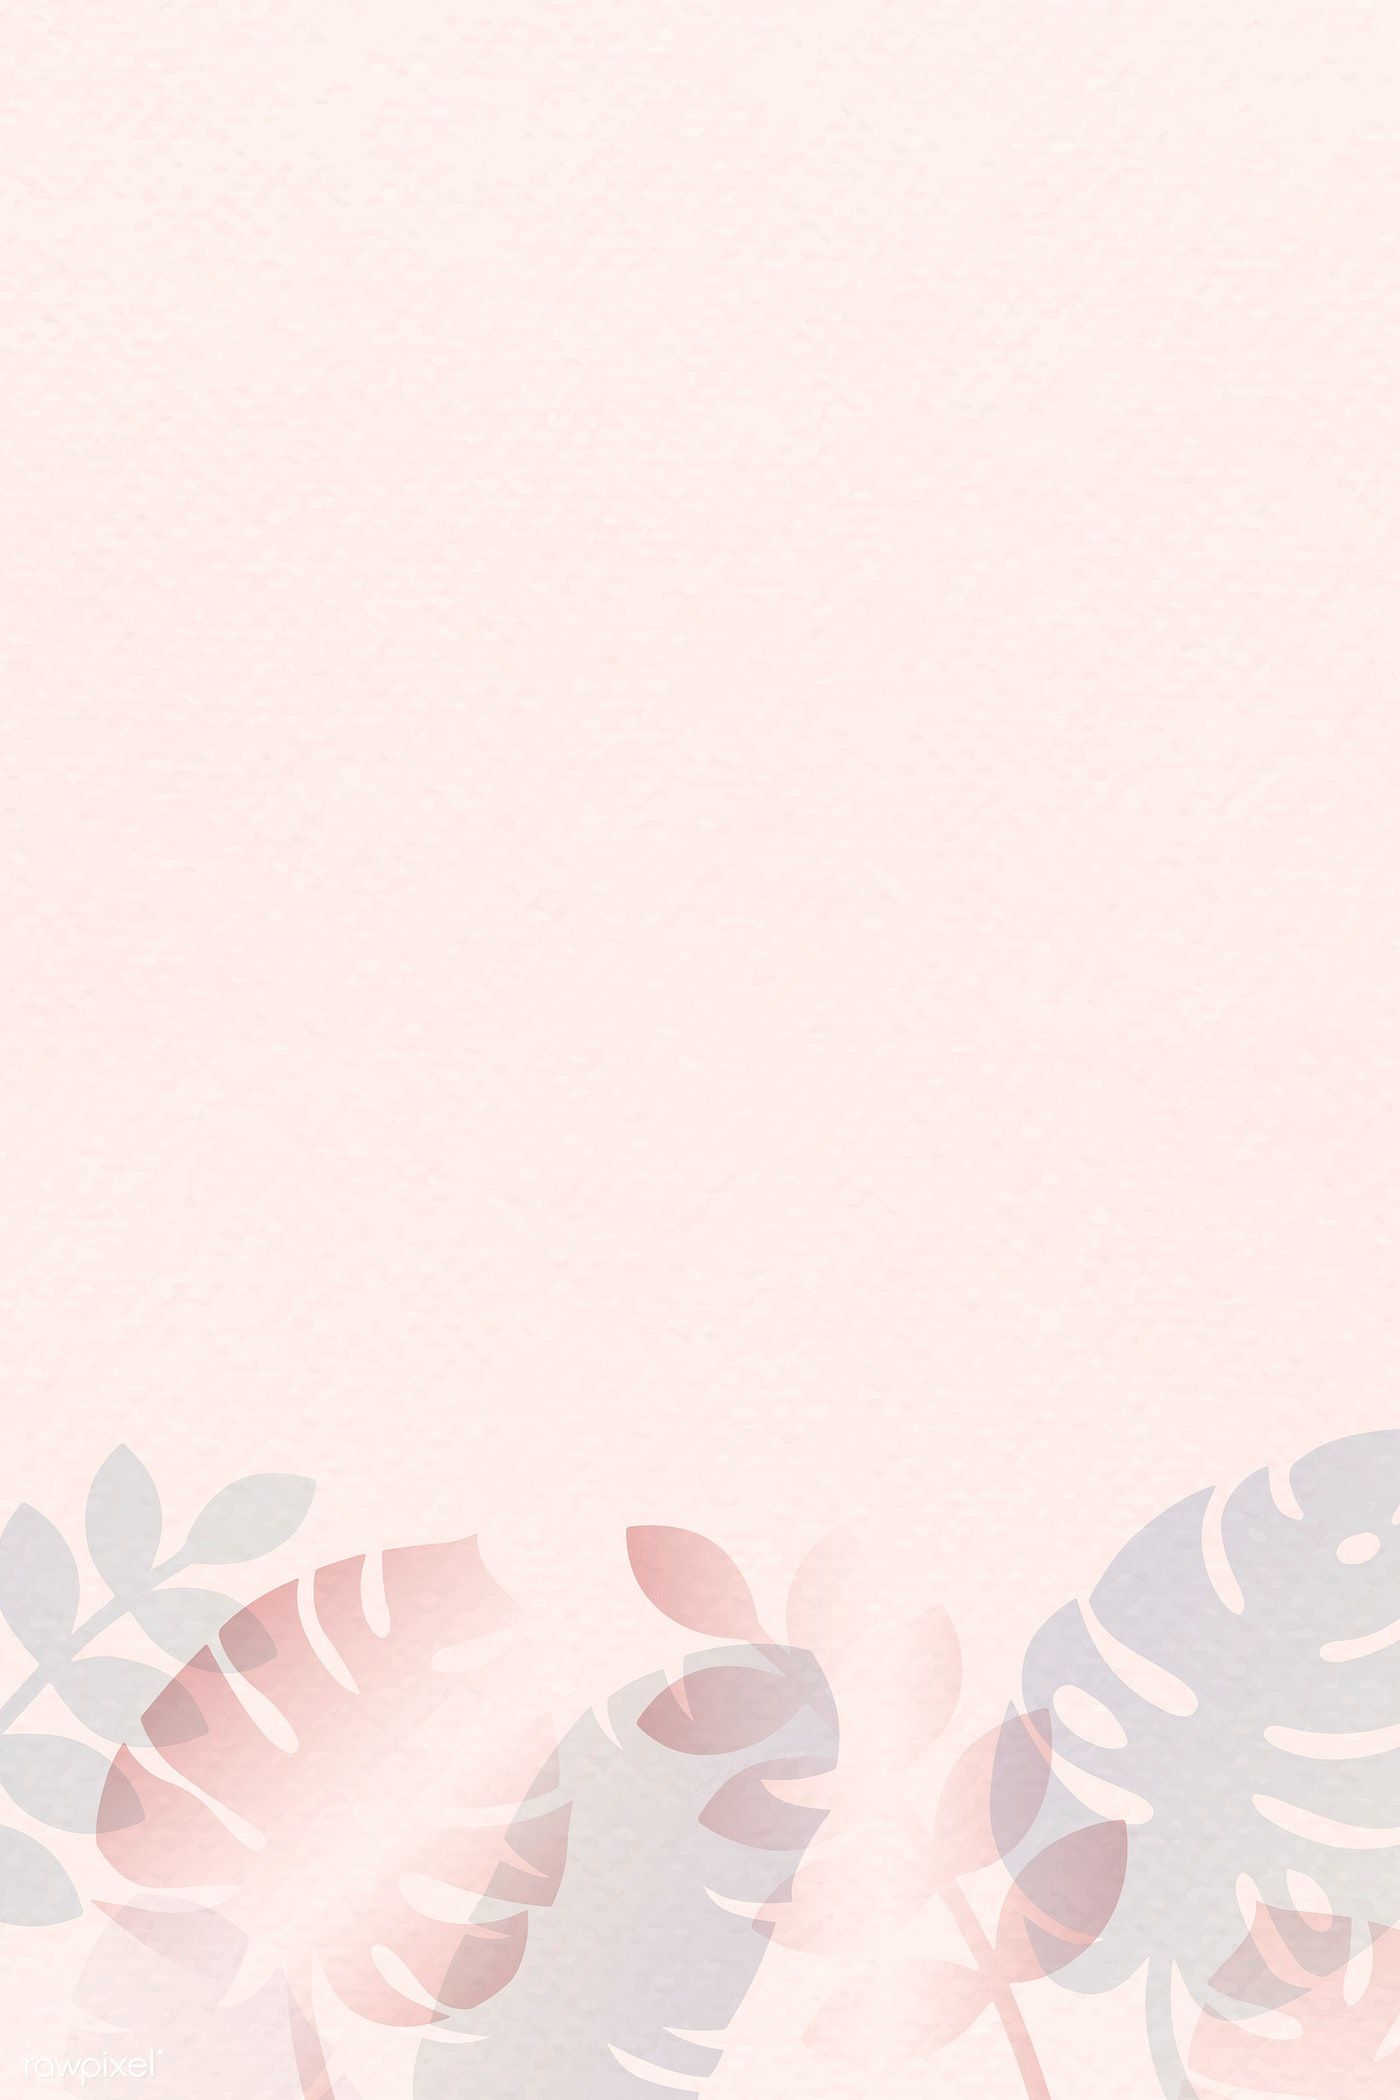 Tropical Leaves Pattern On Pastel Pink Background Vector Premium Image By Rawpixel Com Tropical Leaves Pattern Pastel Background Wallpapers Pastel Background